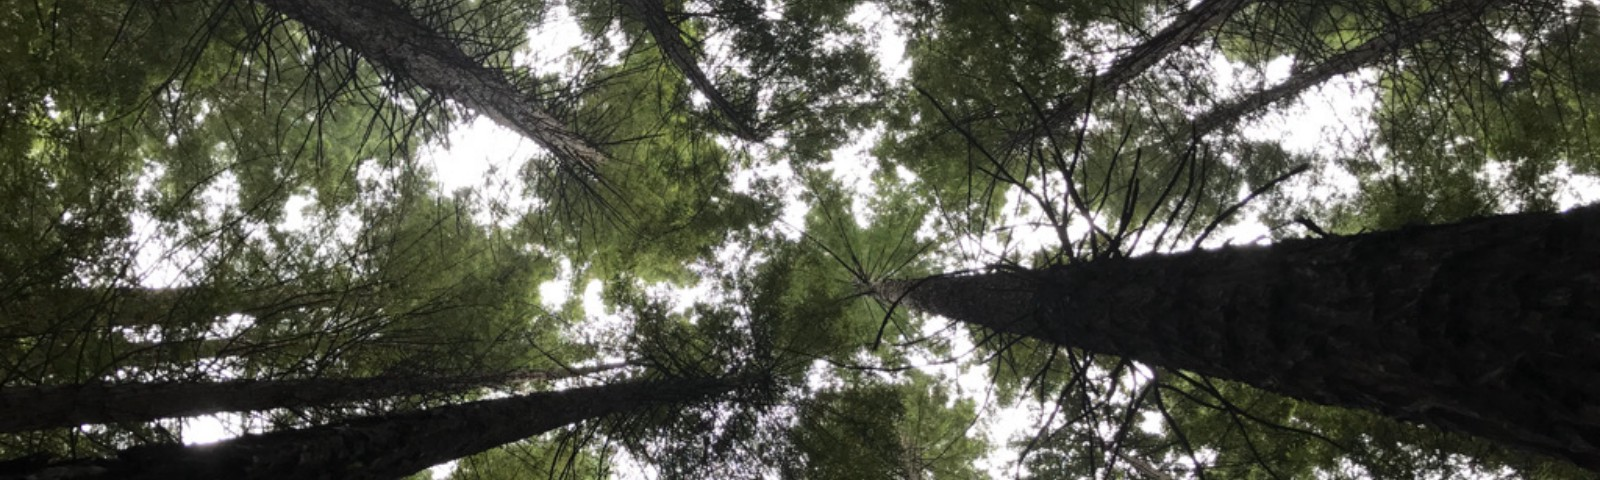 Looking up through the canopy of western red cedars to the sky beyond